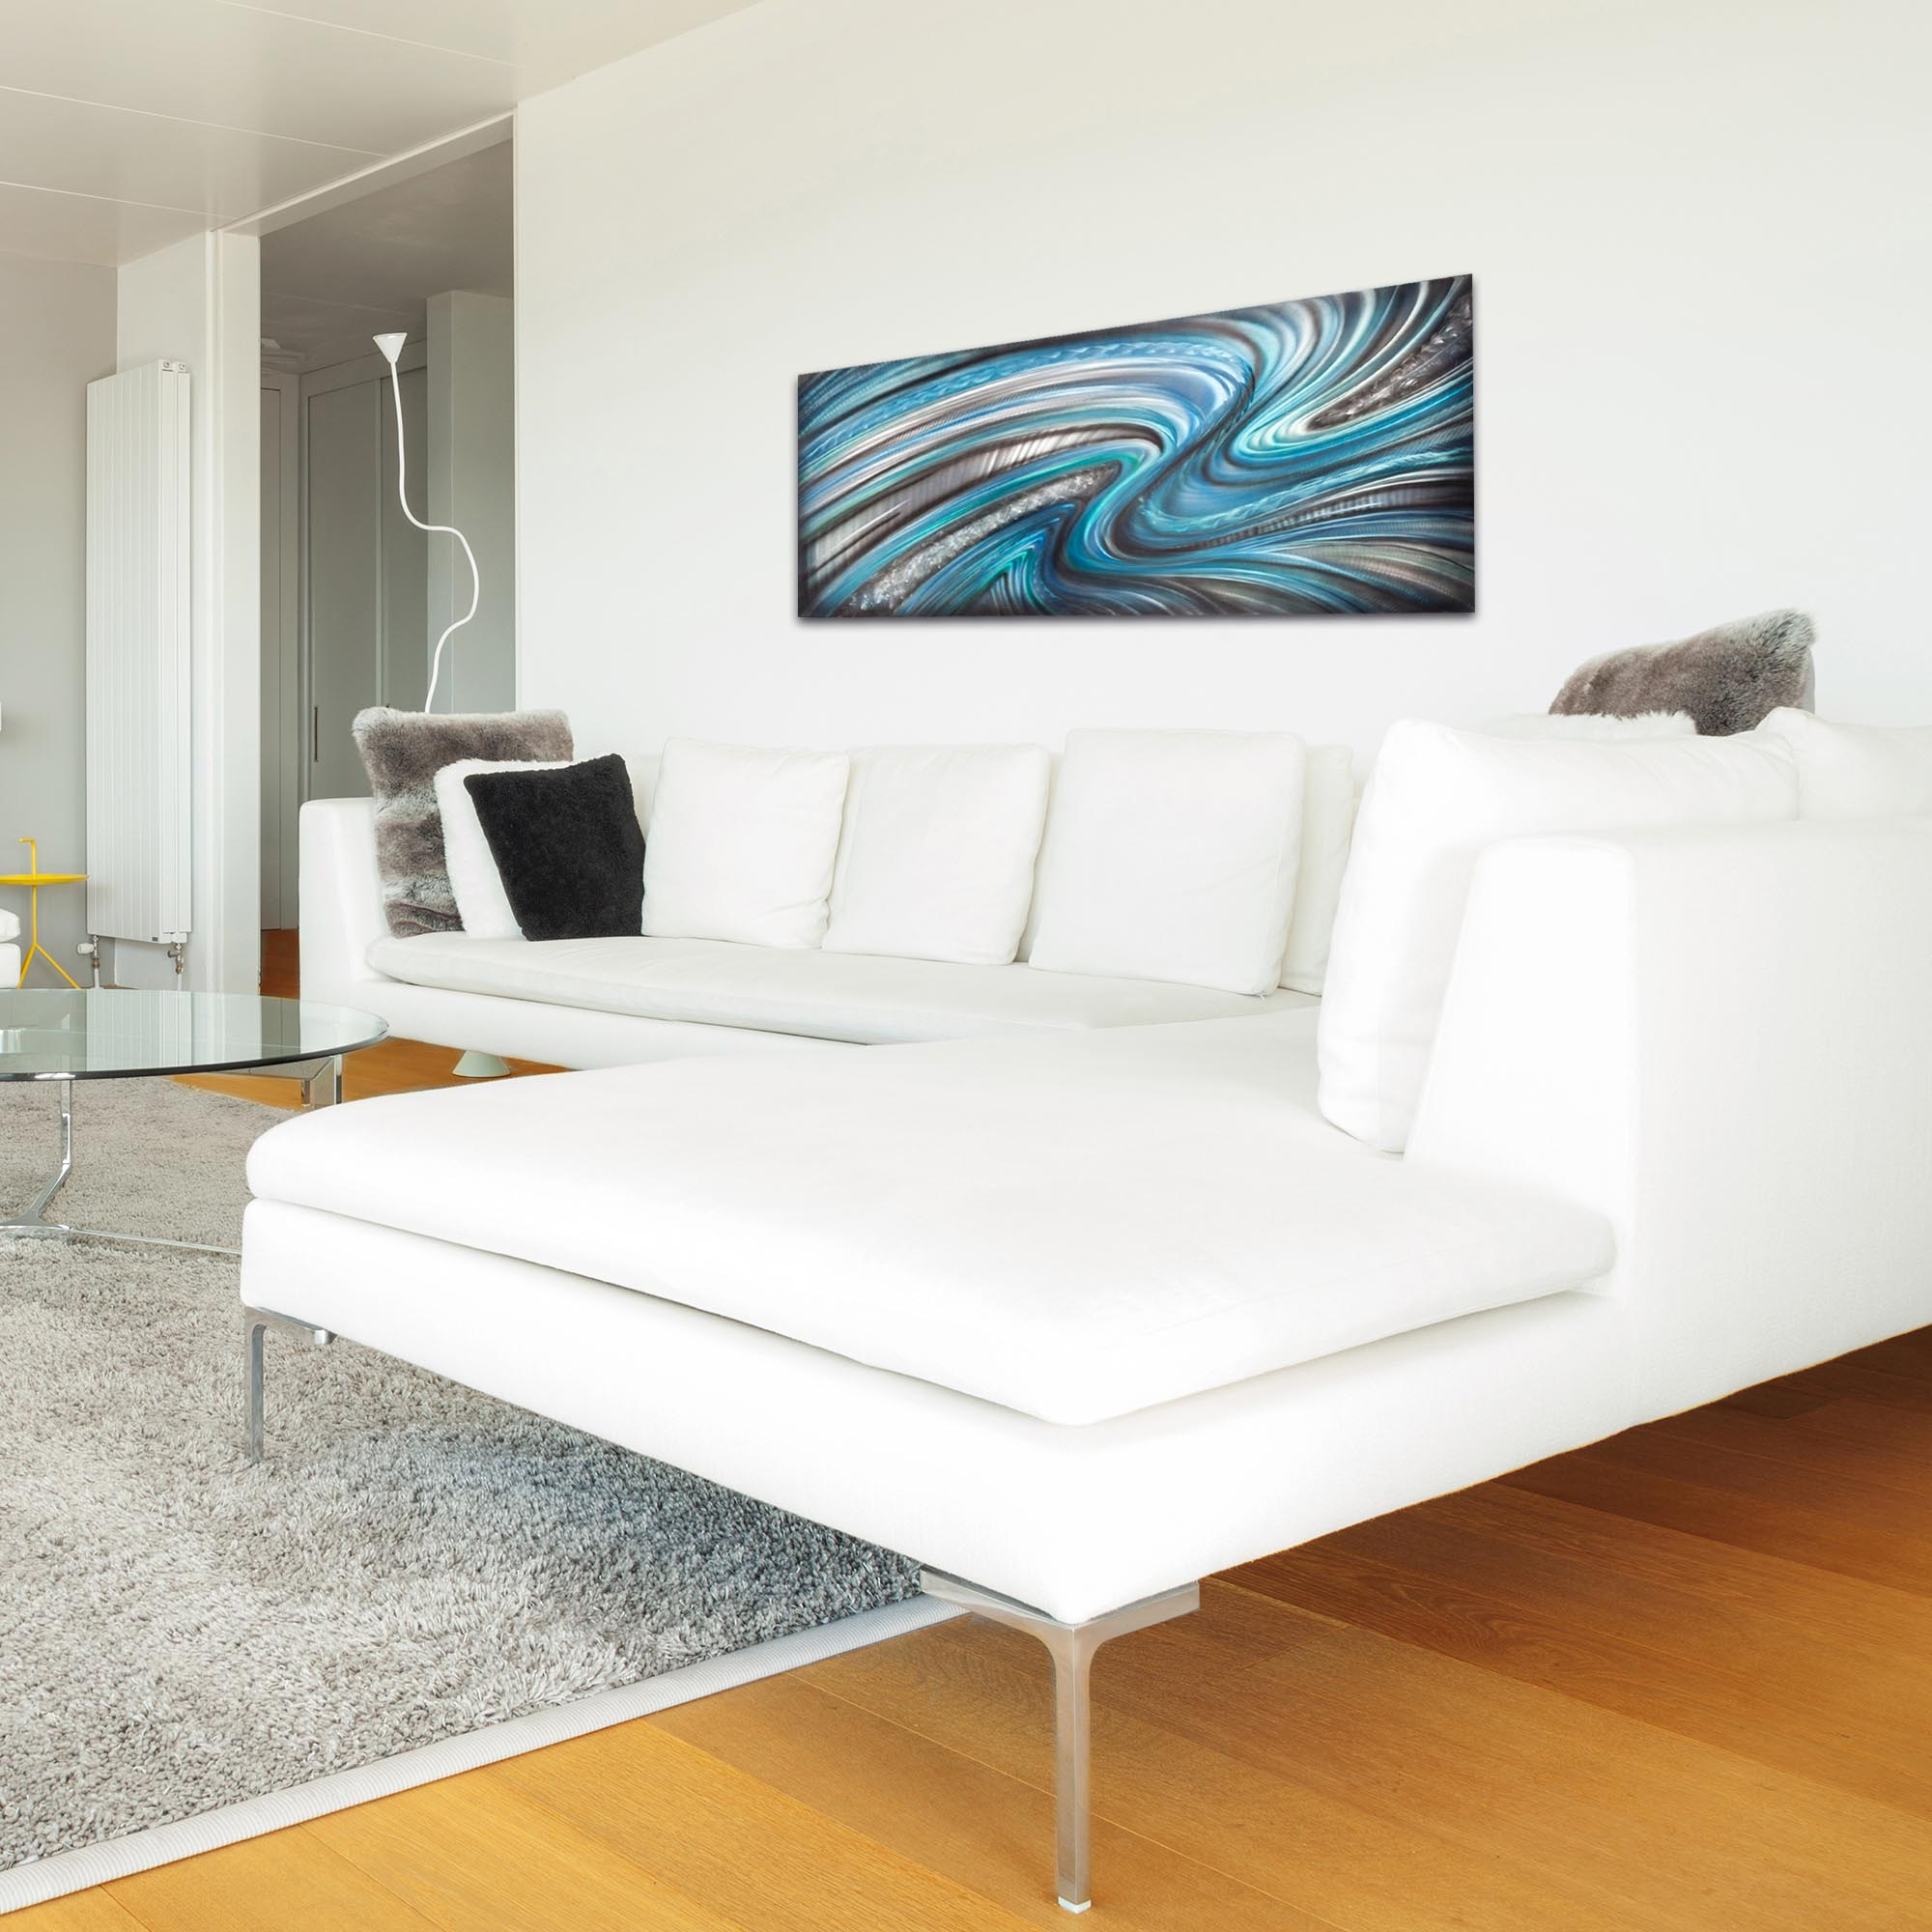 Abstract Wall Art 'Beyond the Waves' - Urban Decor on Metal or Plexiglass - Lifestyle View